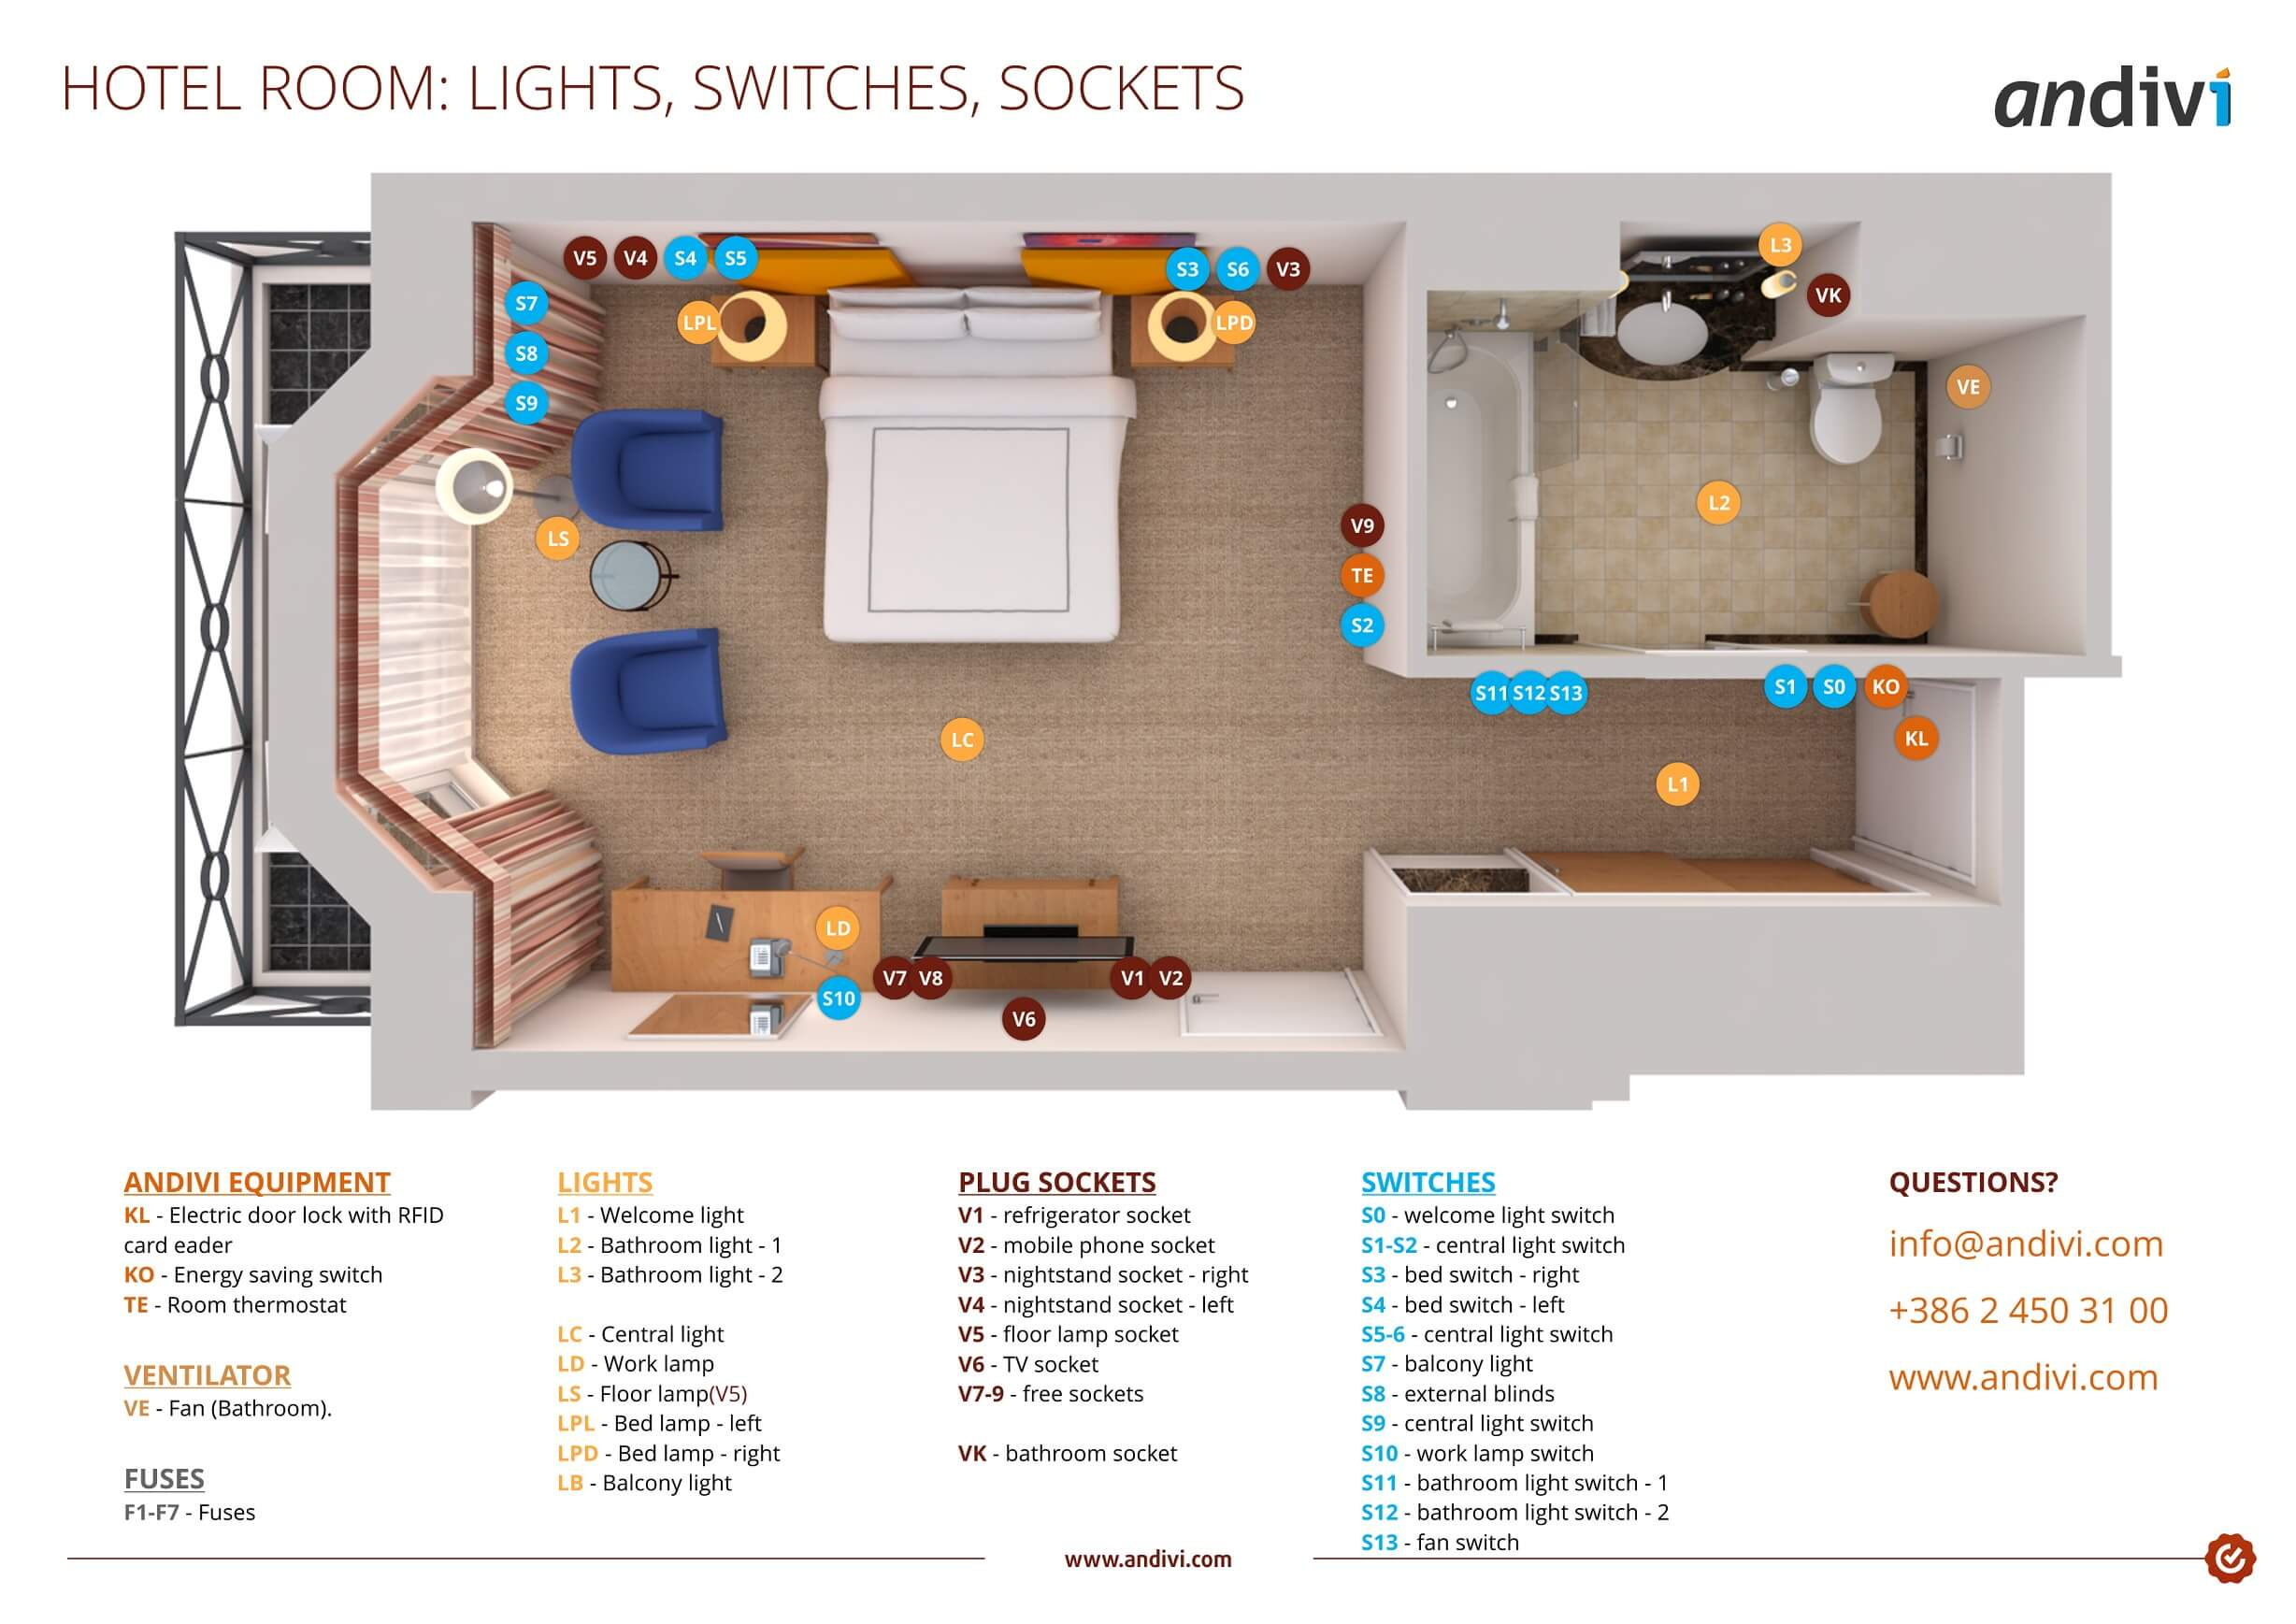 Electrical Installations Layout Plan For A Typical Hotel Power Lock Relay Switch Installation Room Lights Sockets Switches